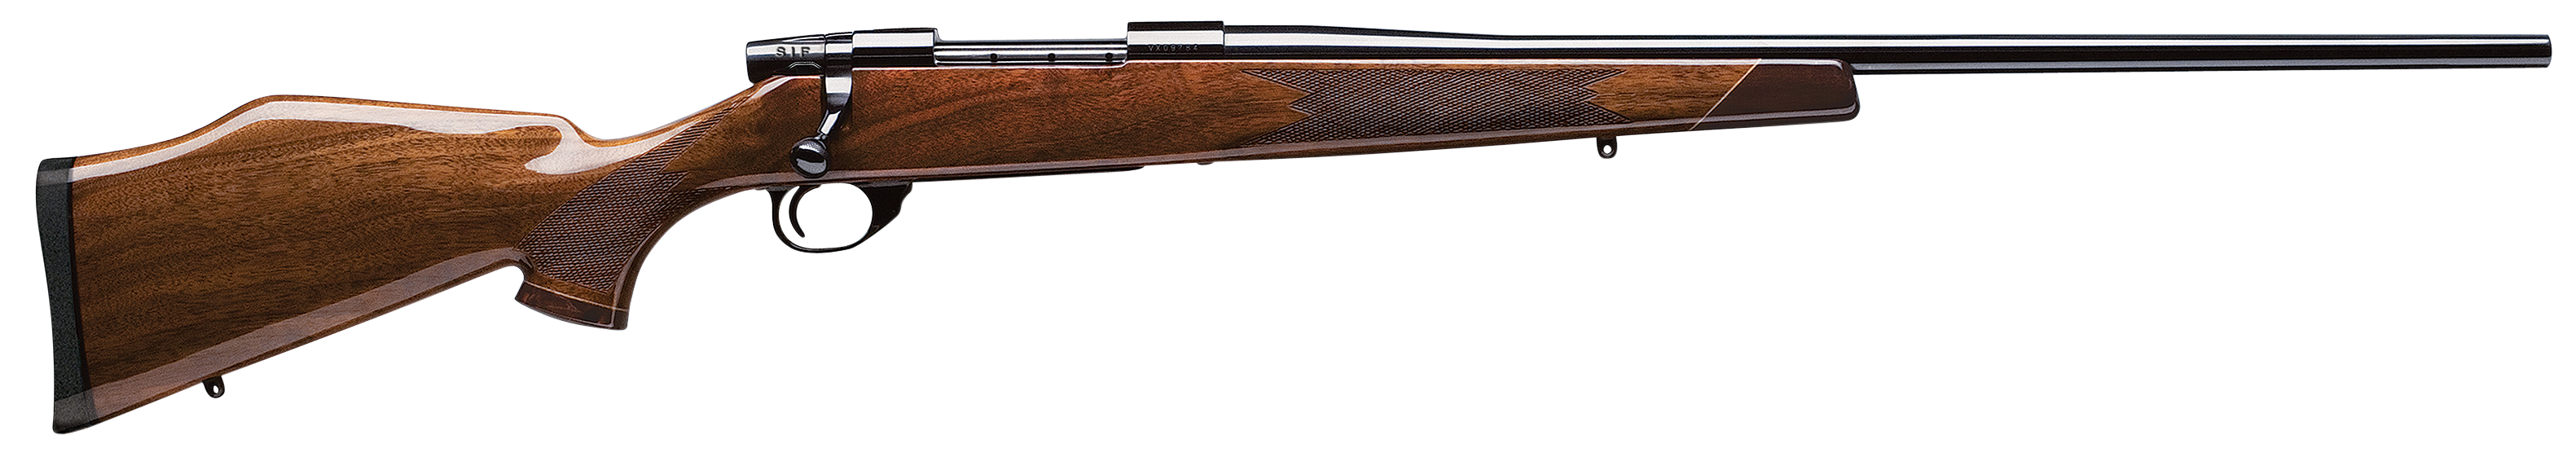 Weatherby Vanguard Deluxe 257 Wby Mag 26